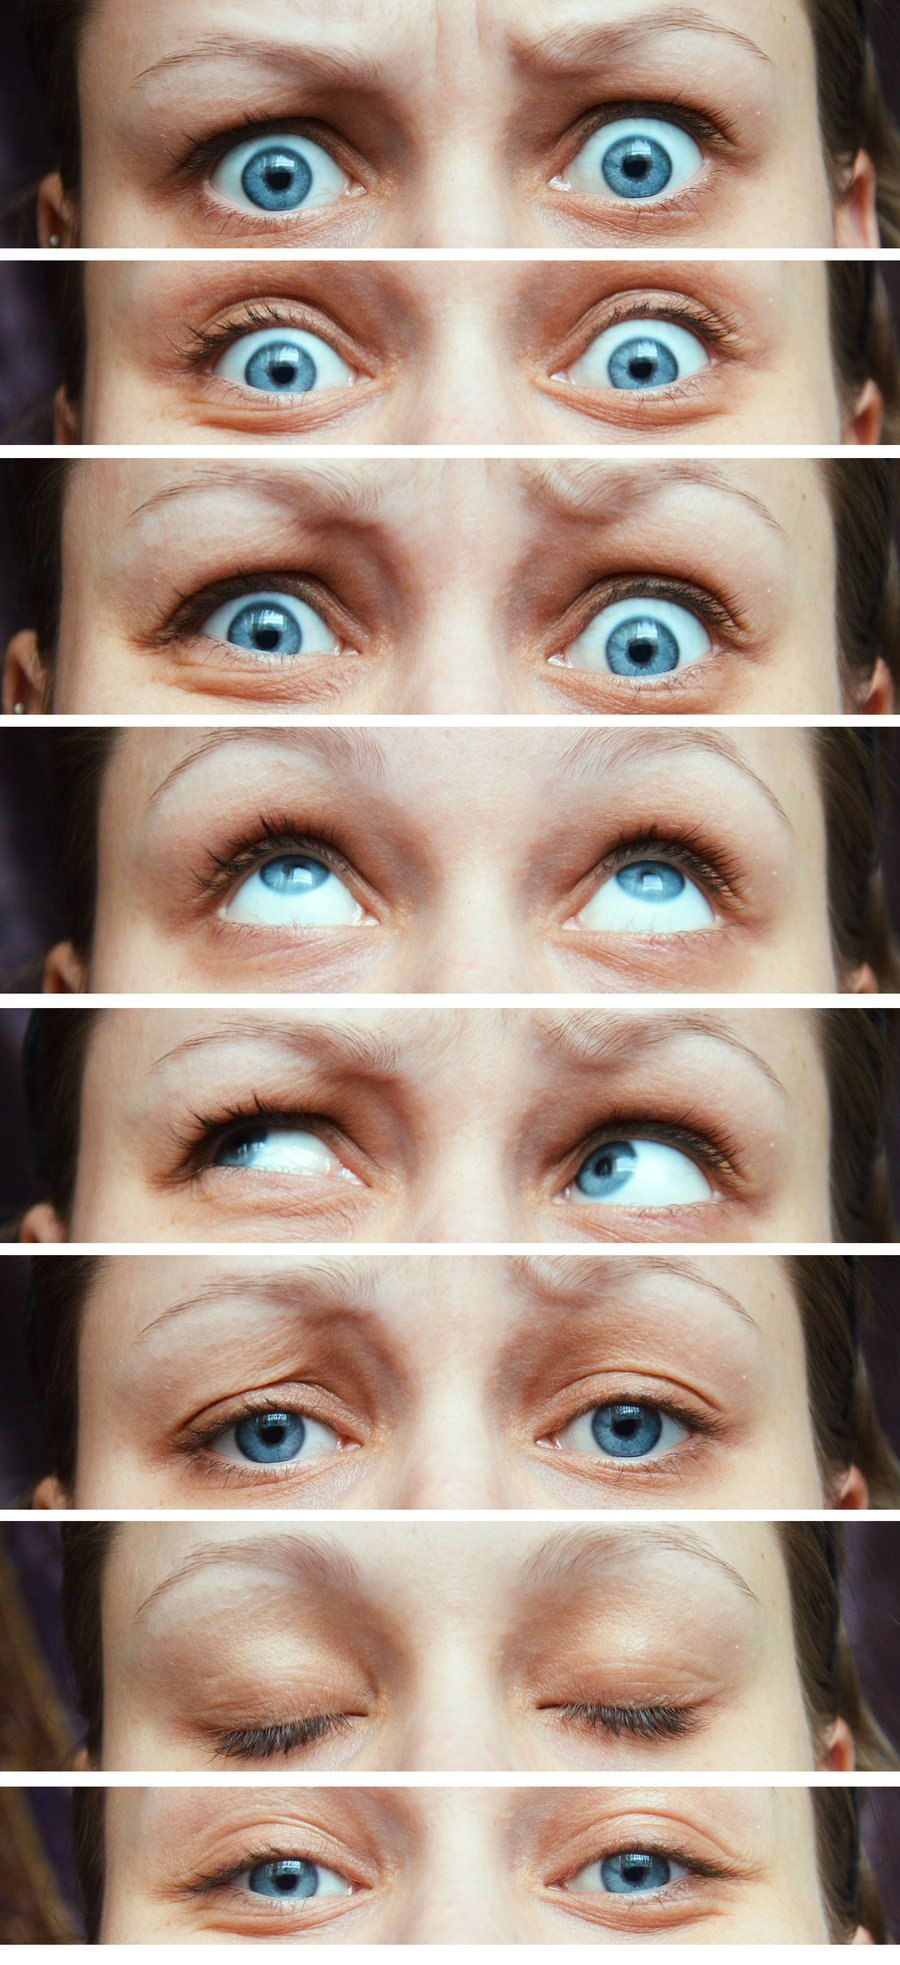 Different Eye Positions And Expressions